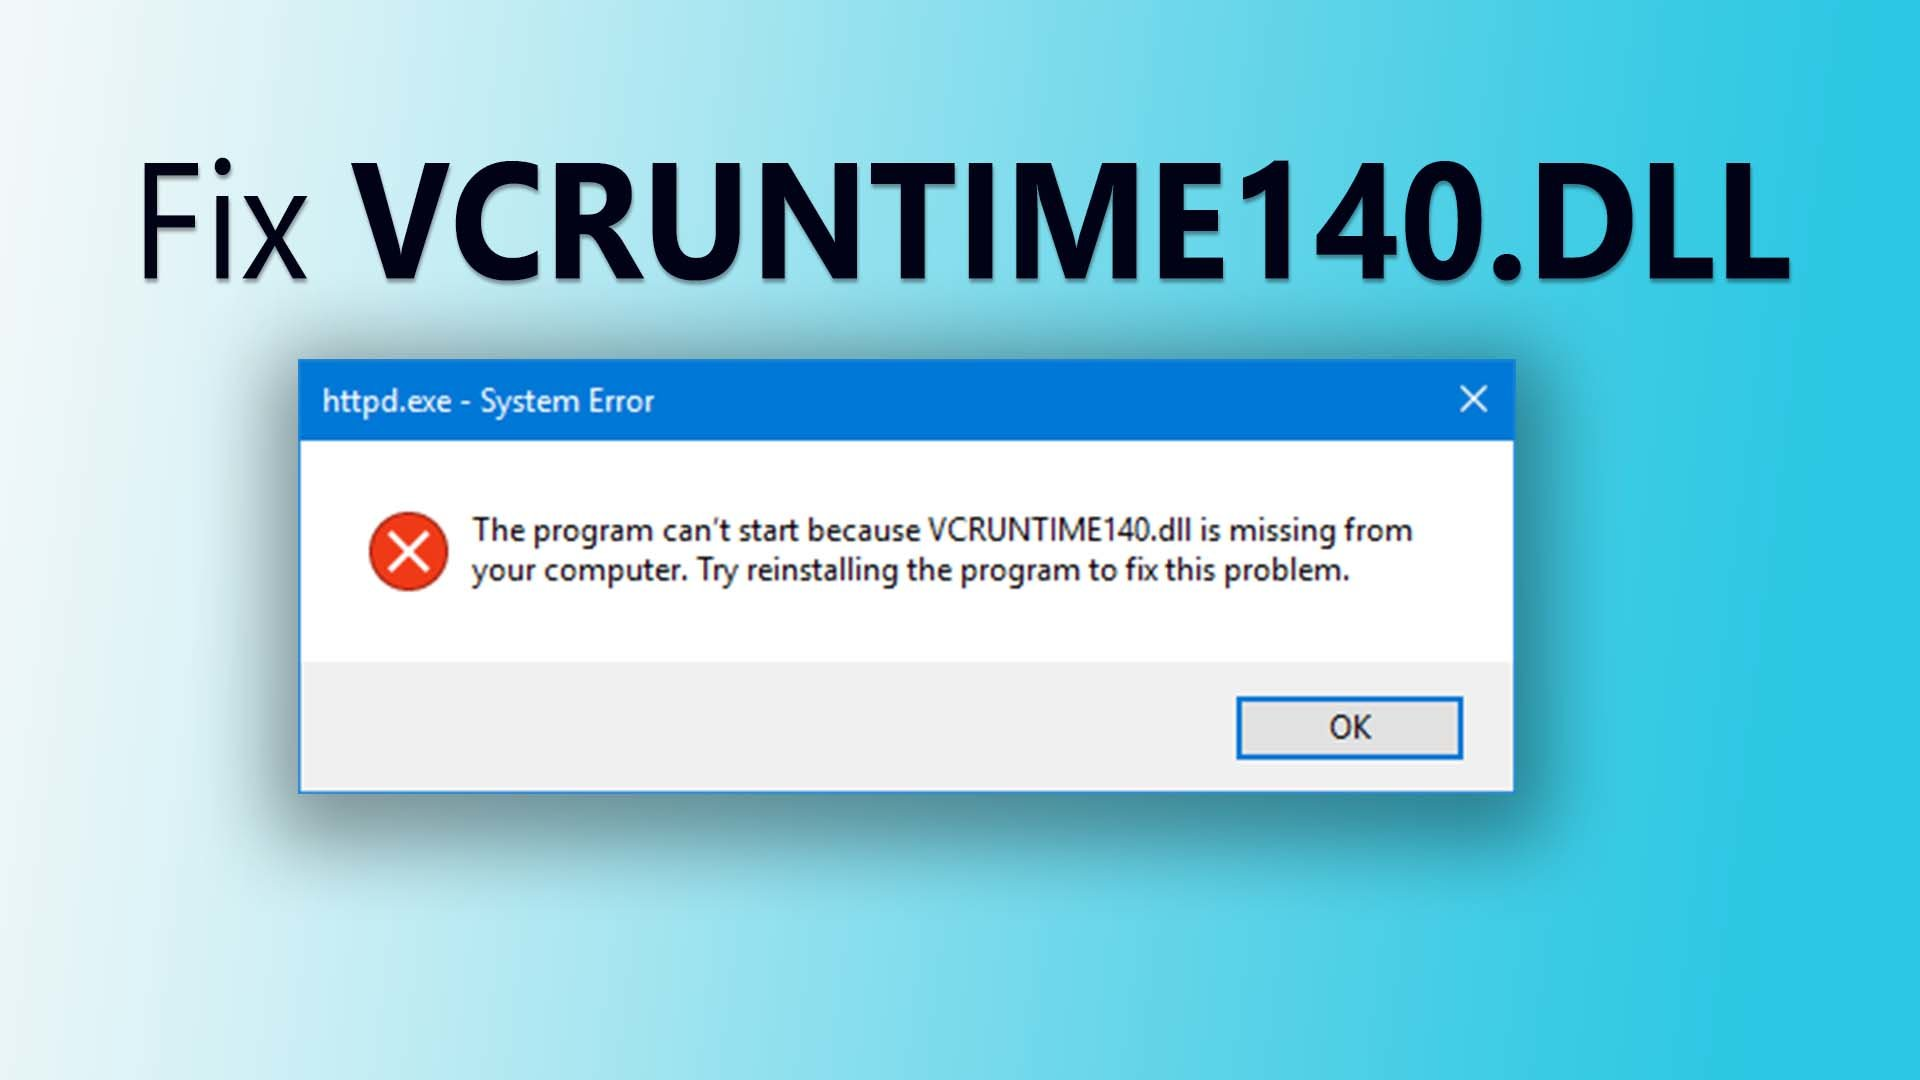 How to Fix VCRUNTIME140.DLL is missing